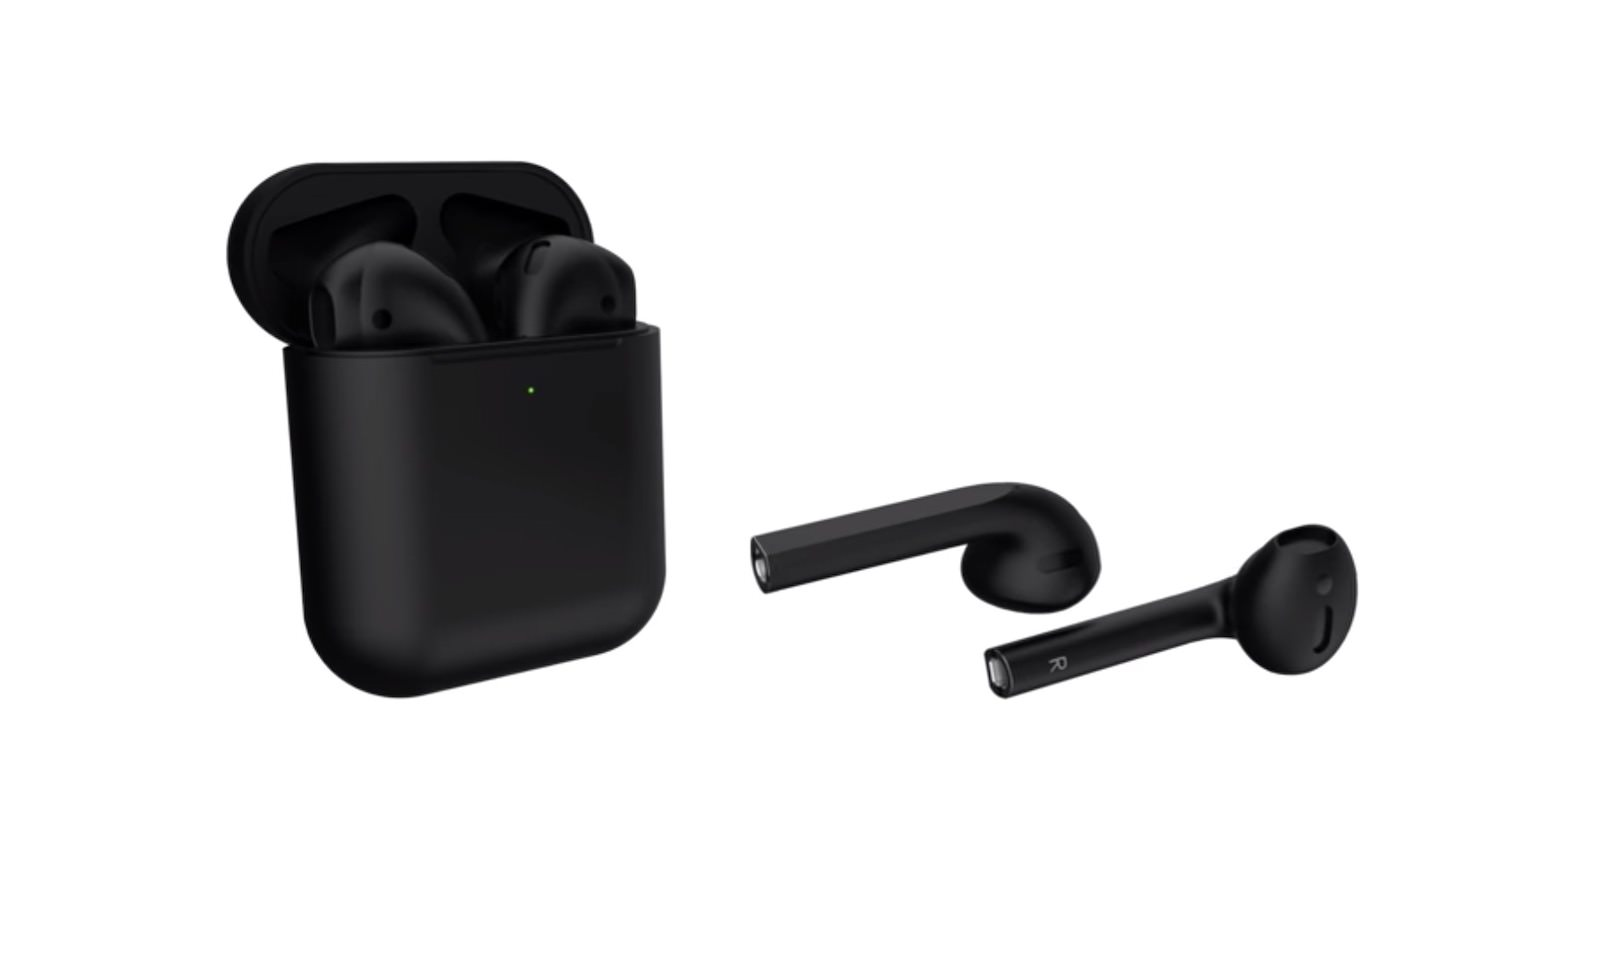 AirPods Black Model Concept Image 3